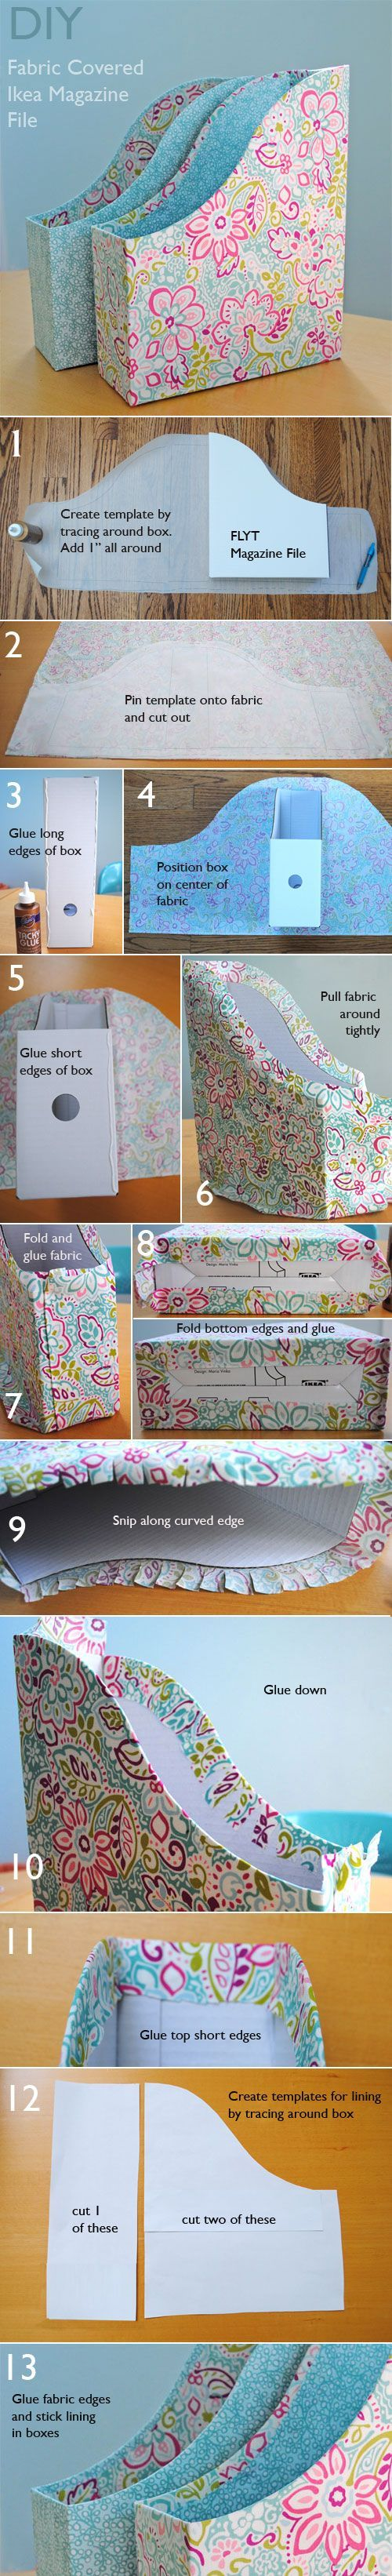 DIY Fabric Covered Magazing Boxes from IKEA for fun stylish organization